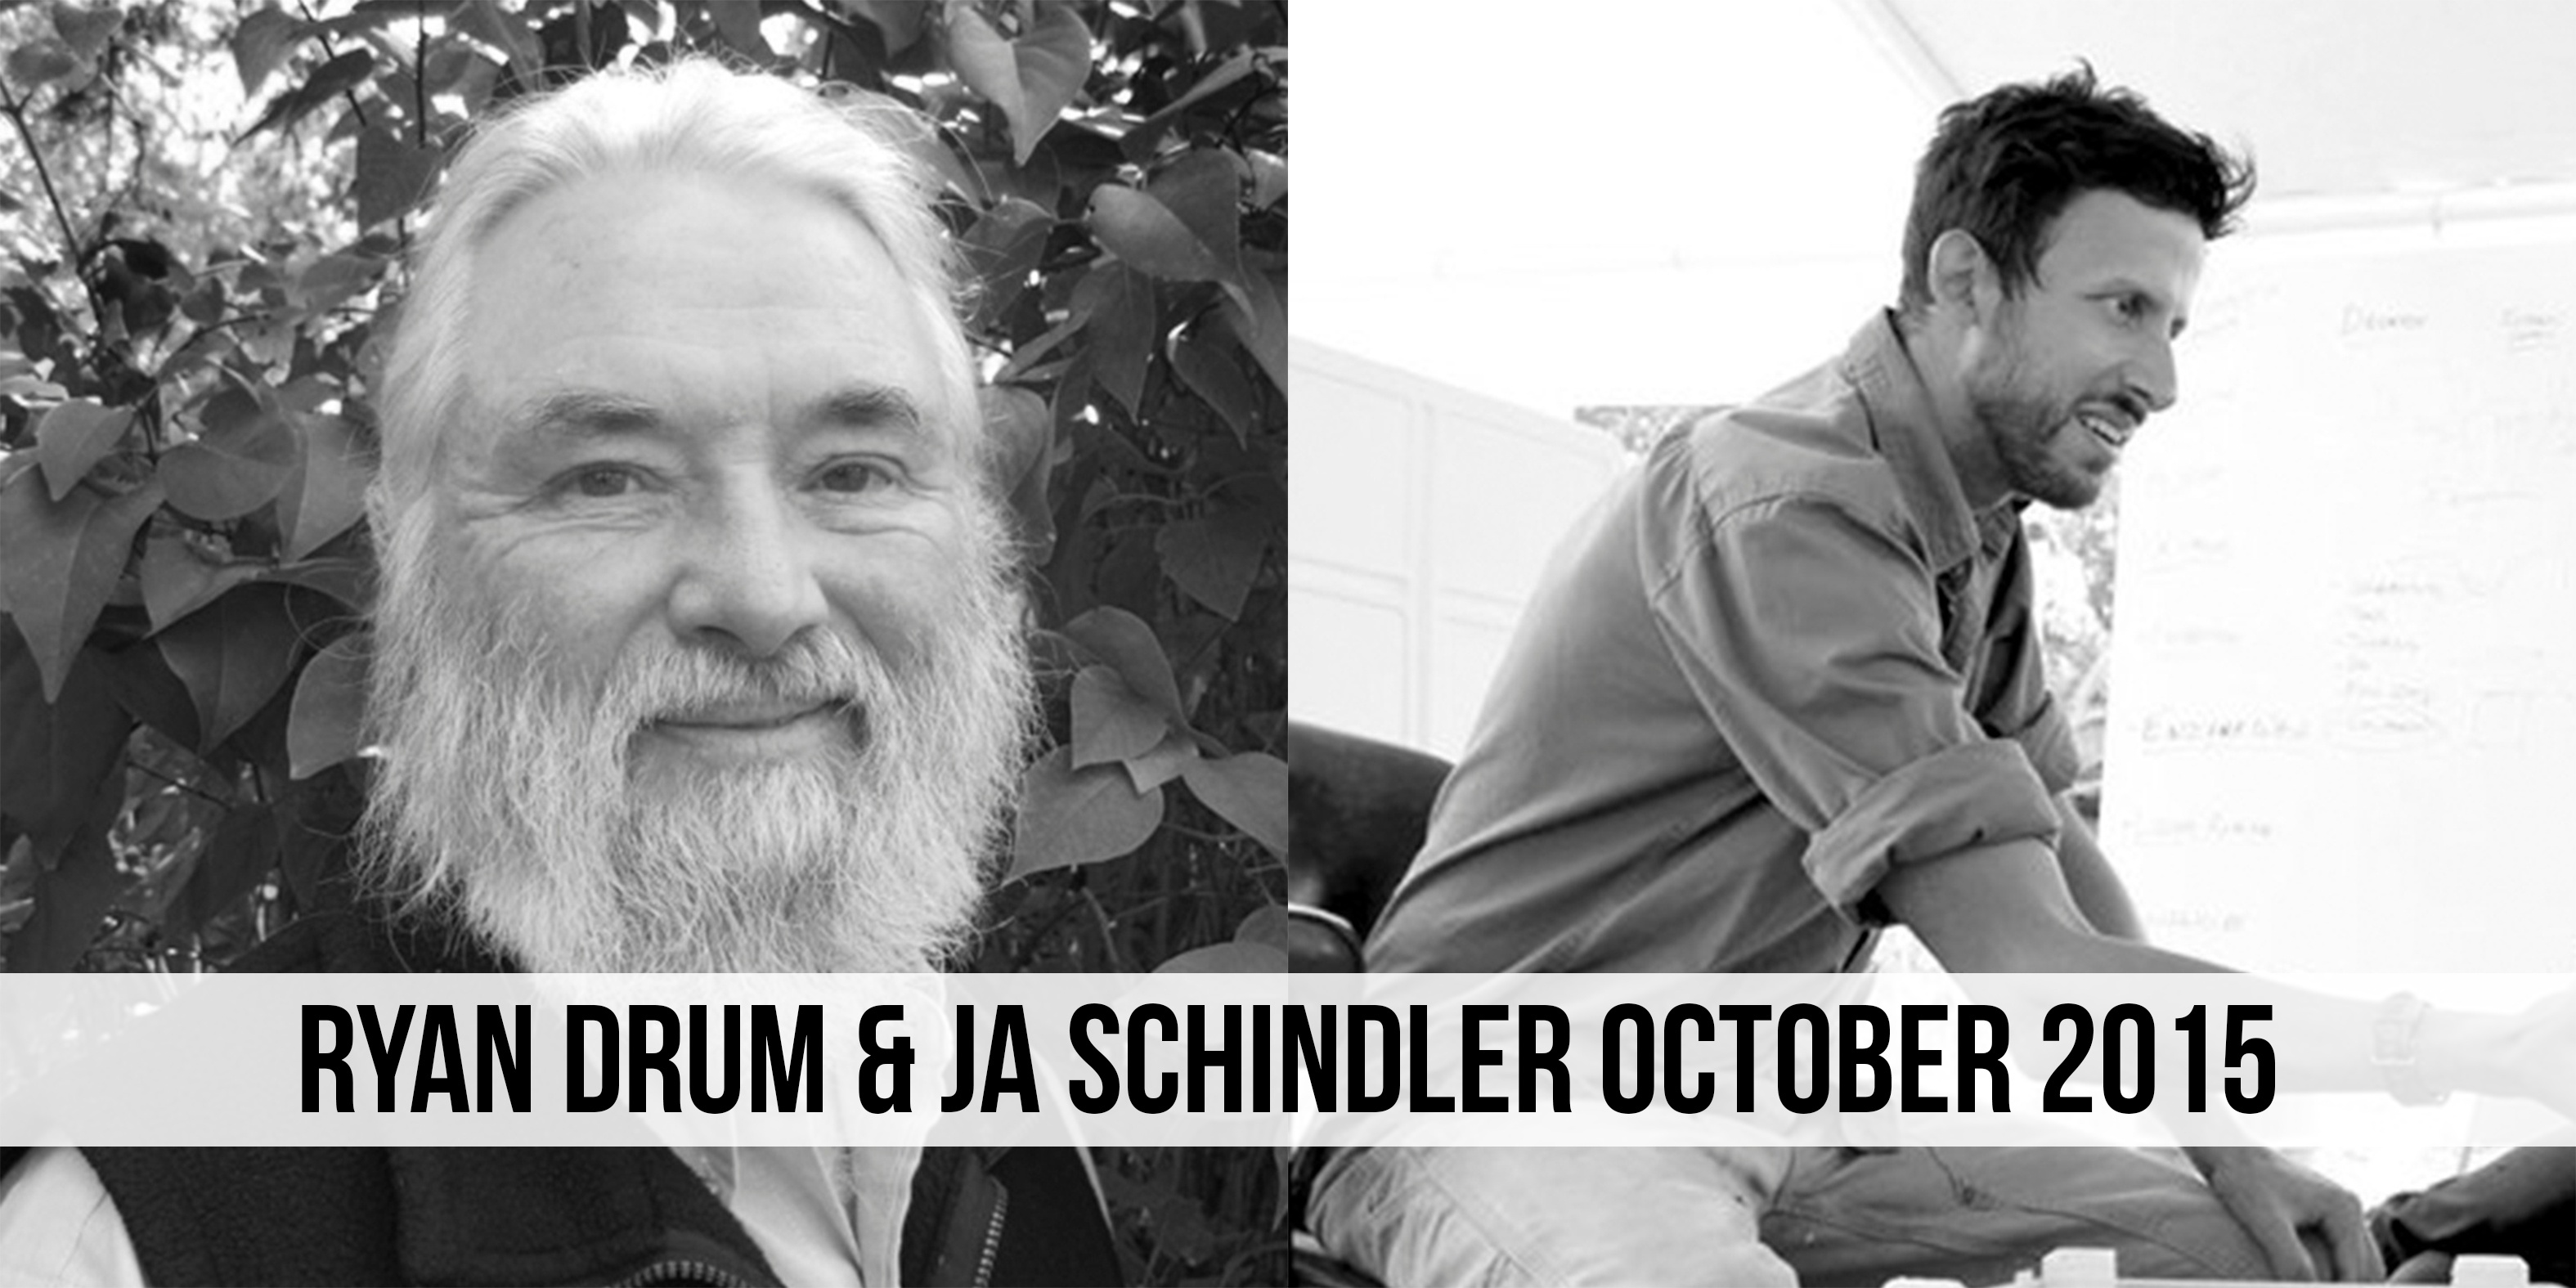 Ryan Drum & JA Schindler October 2015